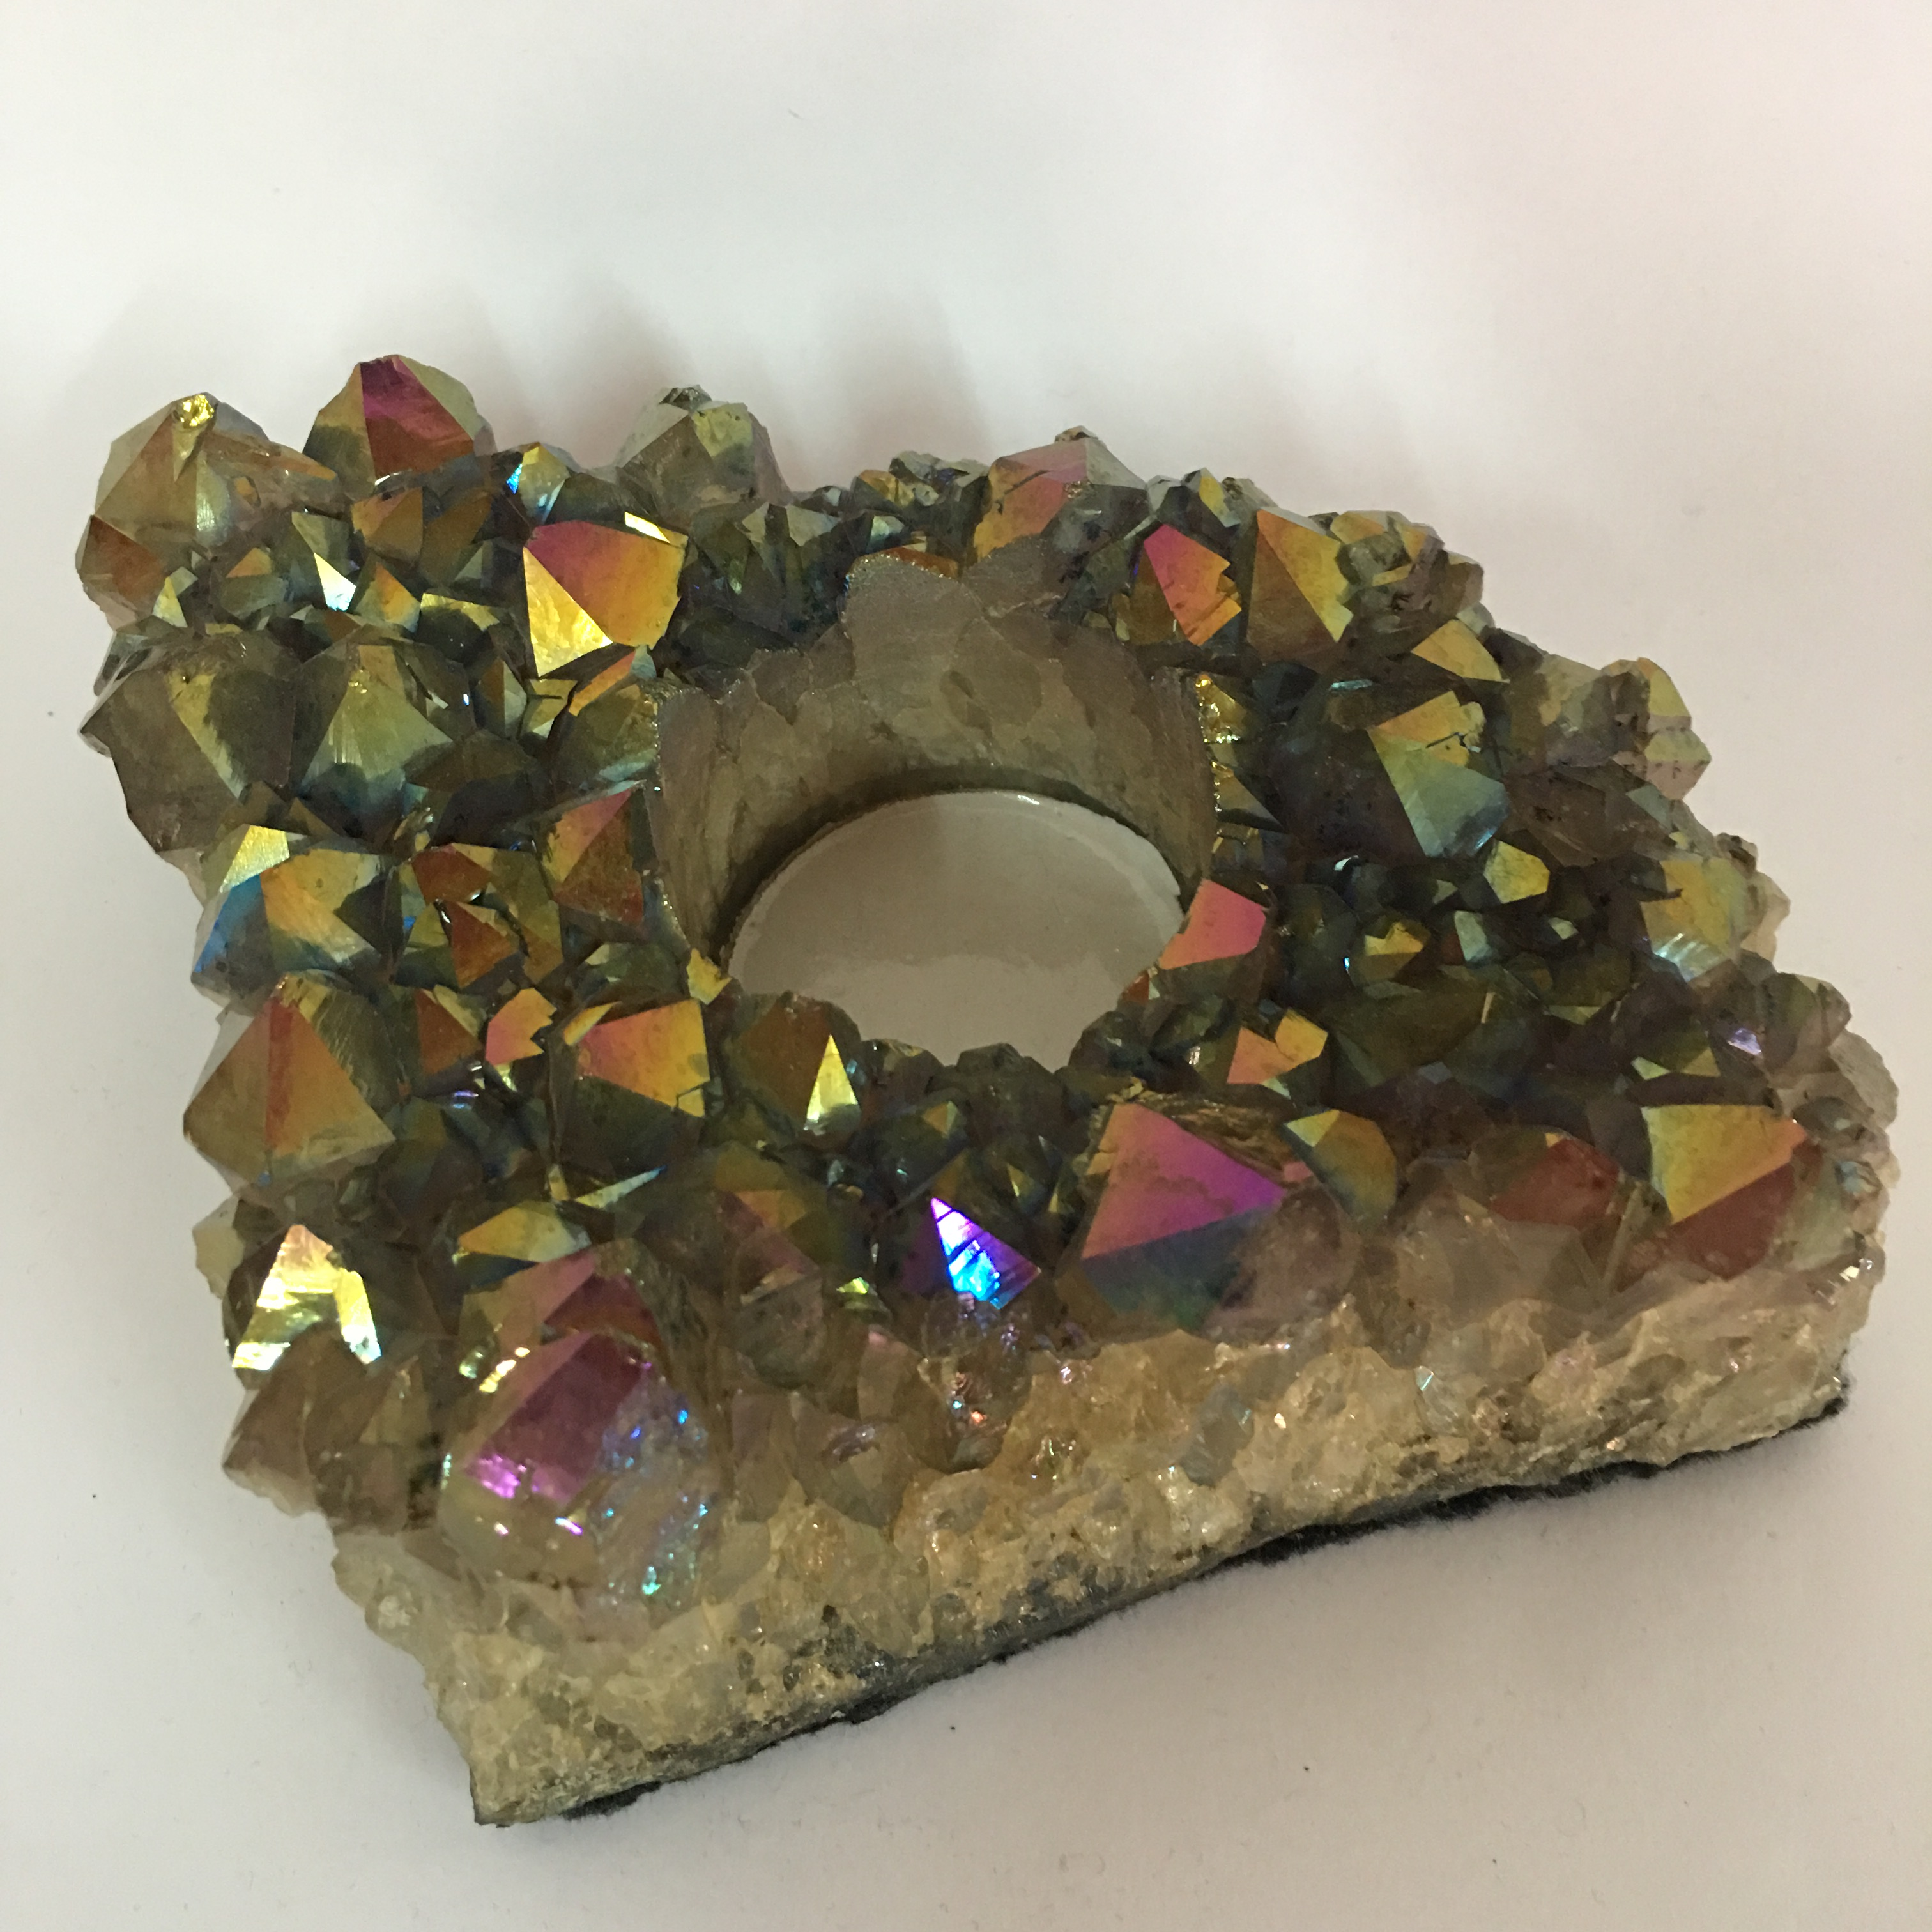 Stones from Uruguay - Rainbow Aura Amethyst Druzy Candle Holder